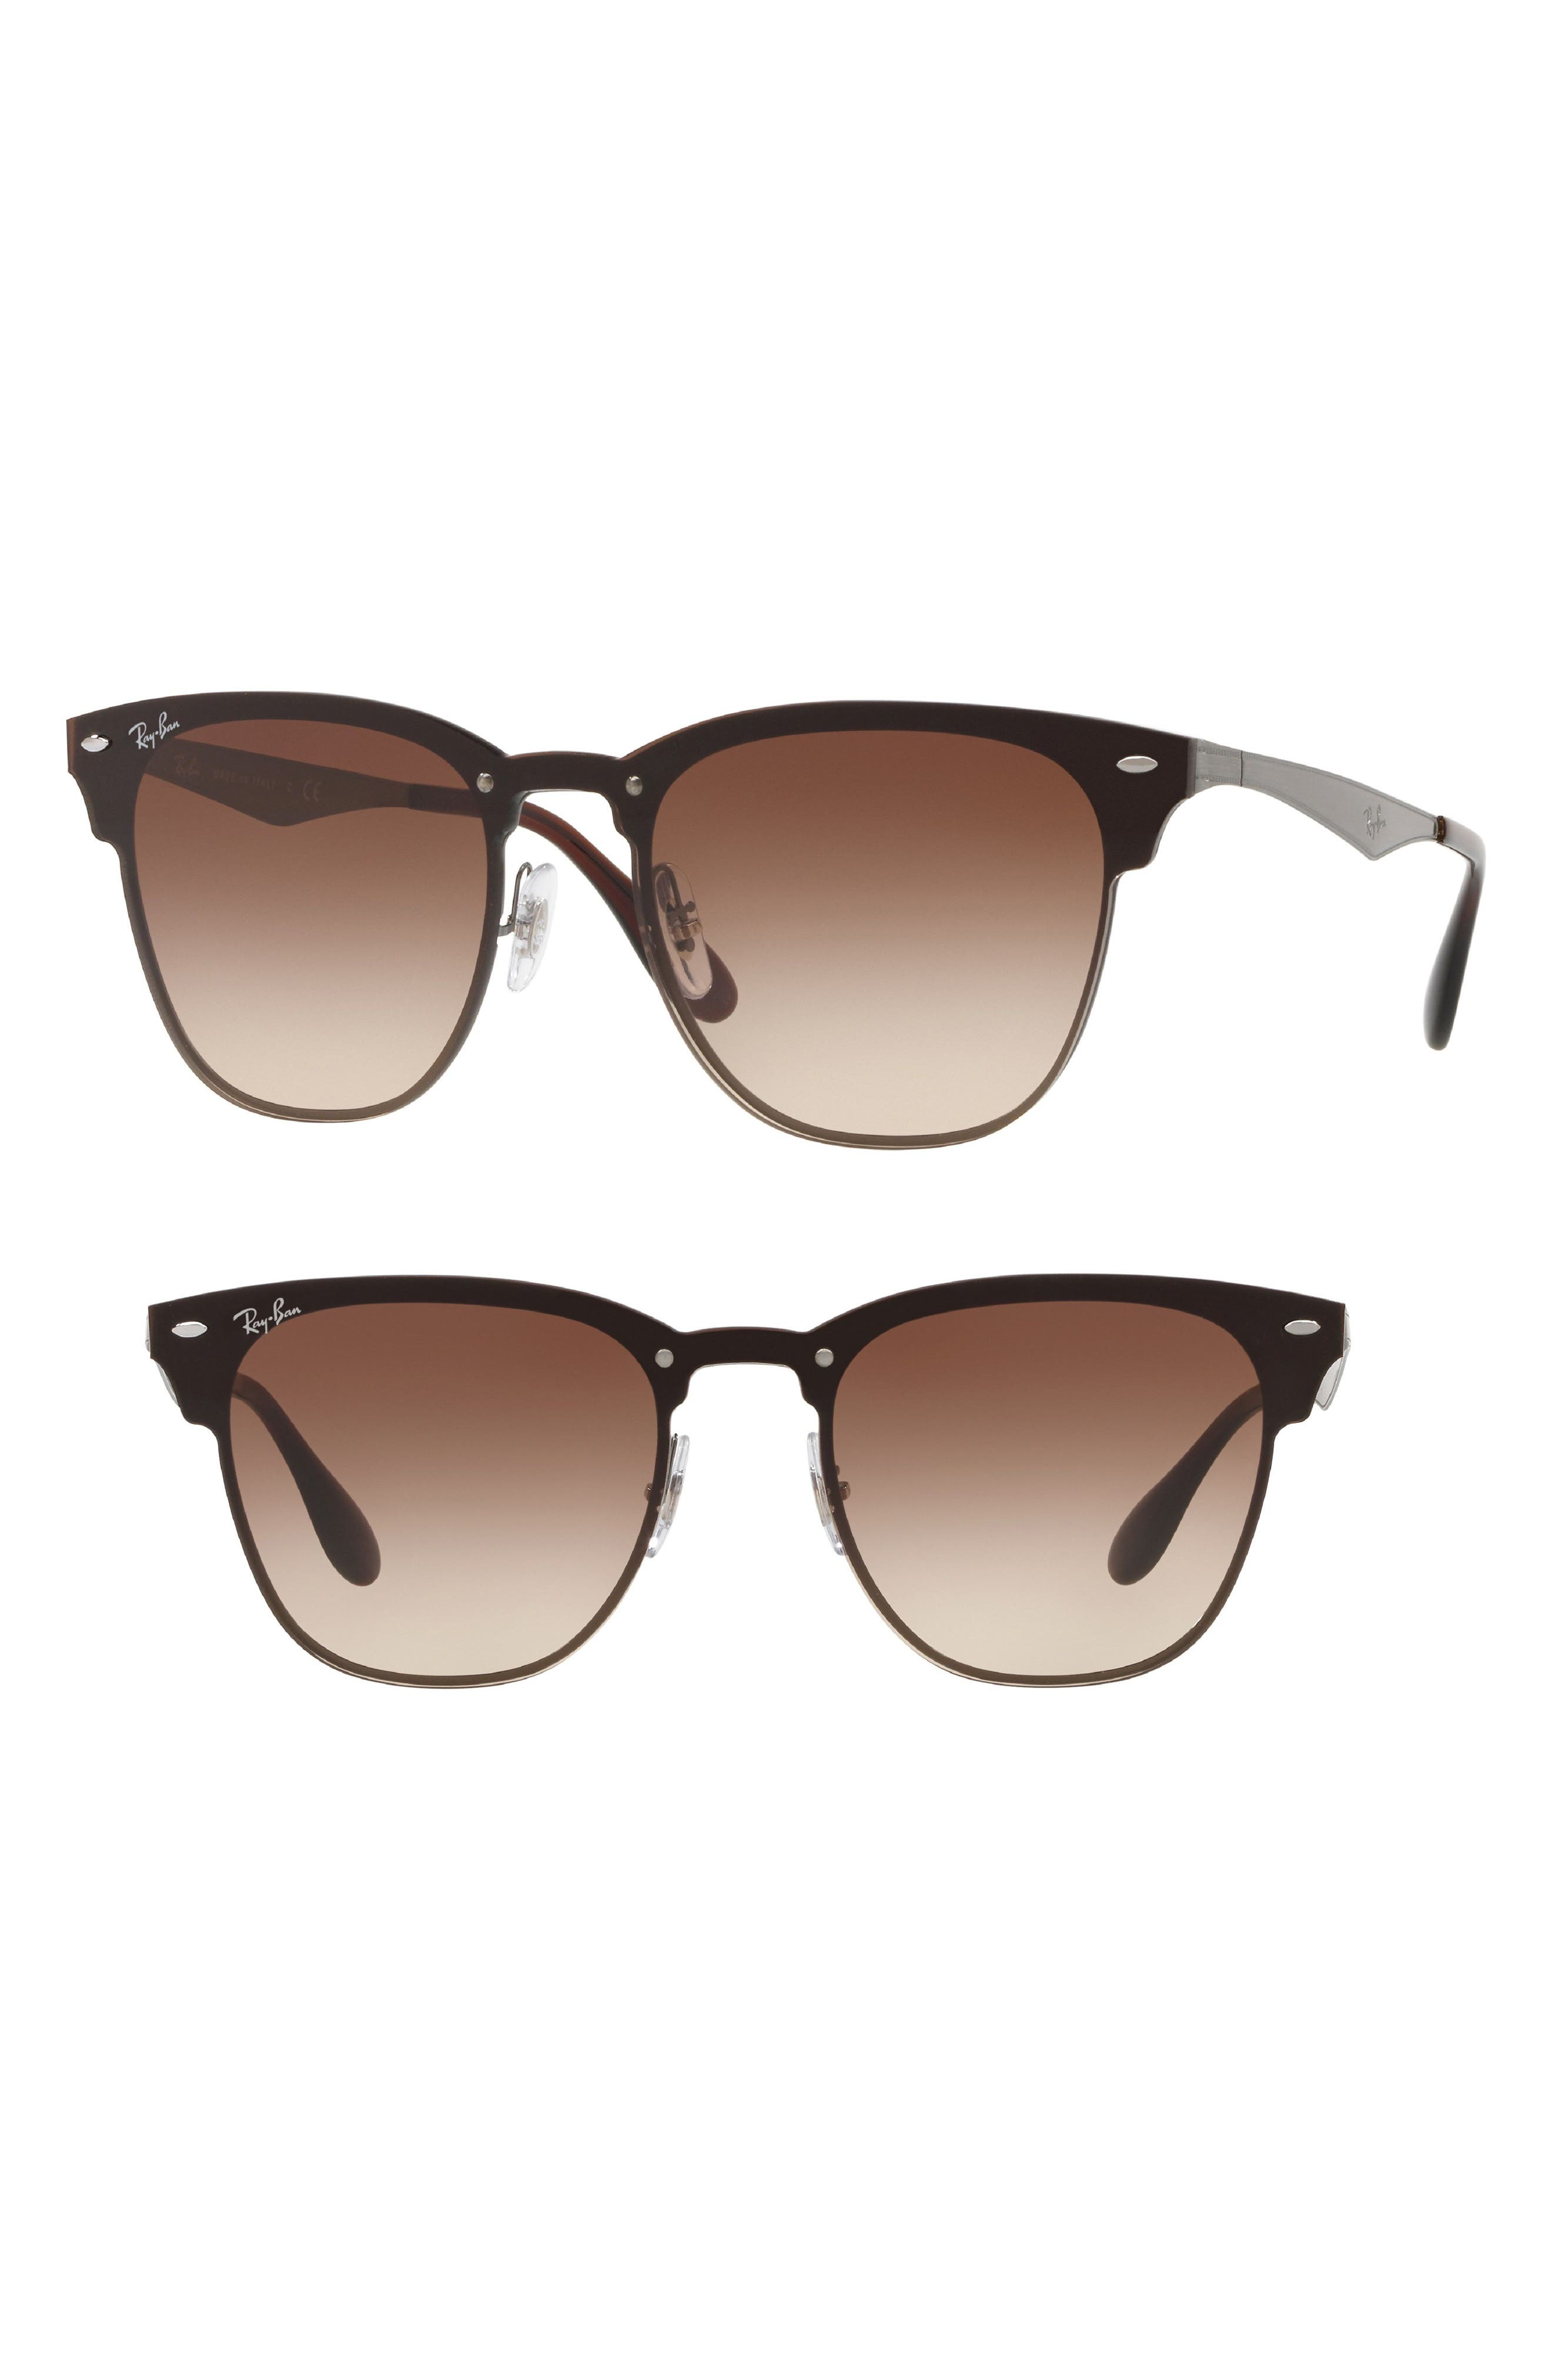 Main Image - Ray-Ban Blaze Clubmaster 47mm Sunglasses